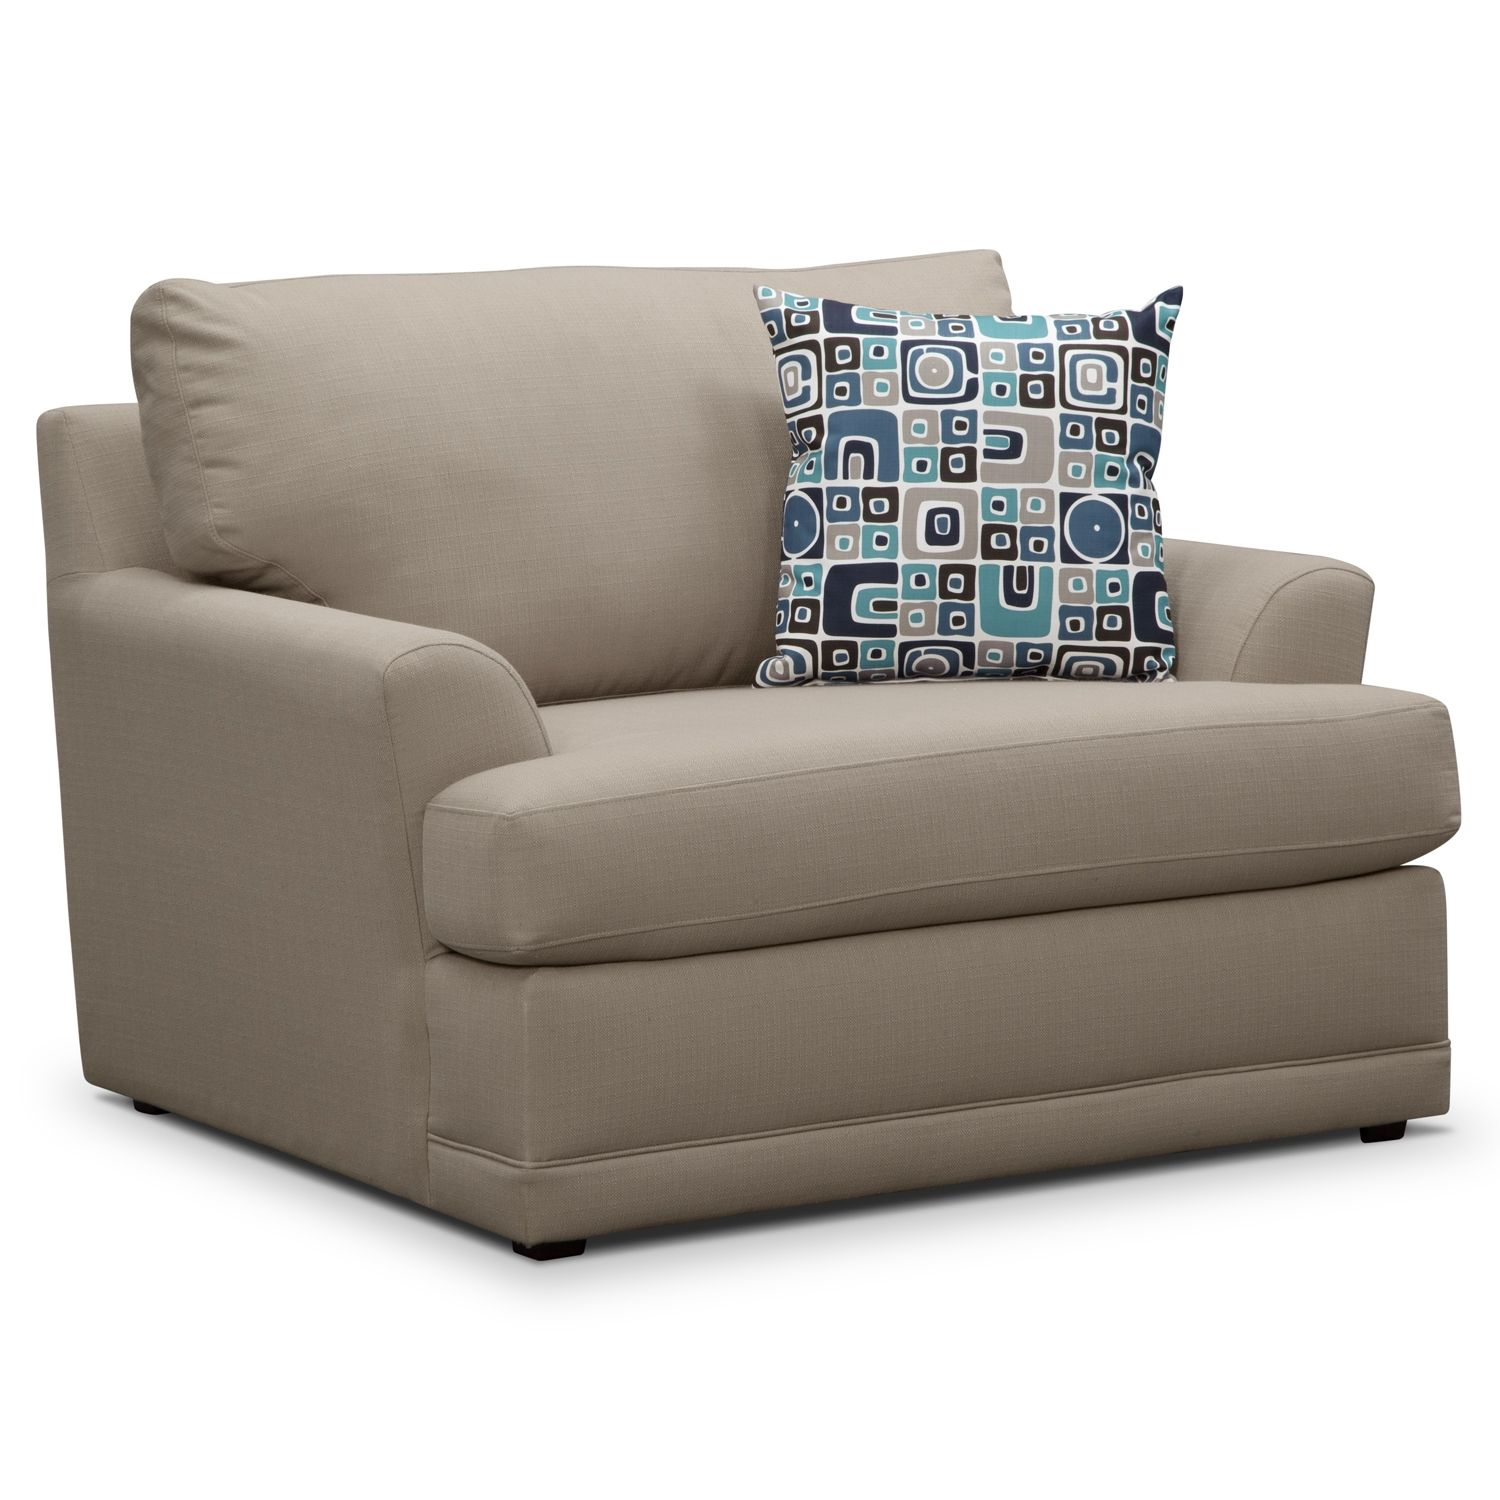 Living Room Furniture Kismet II Chair and a Half Value